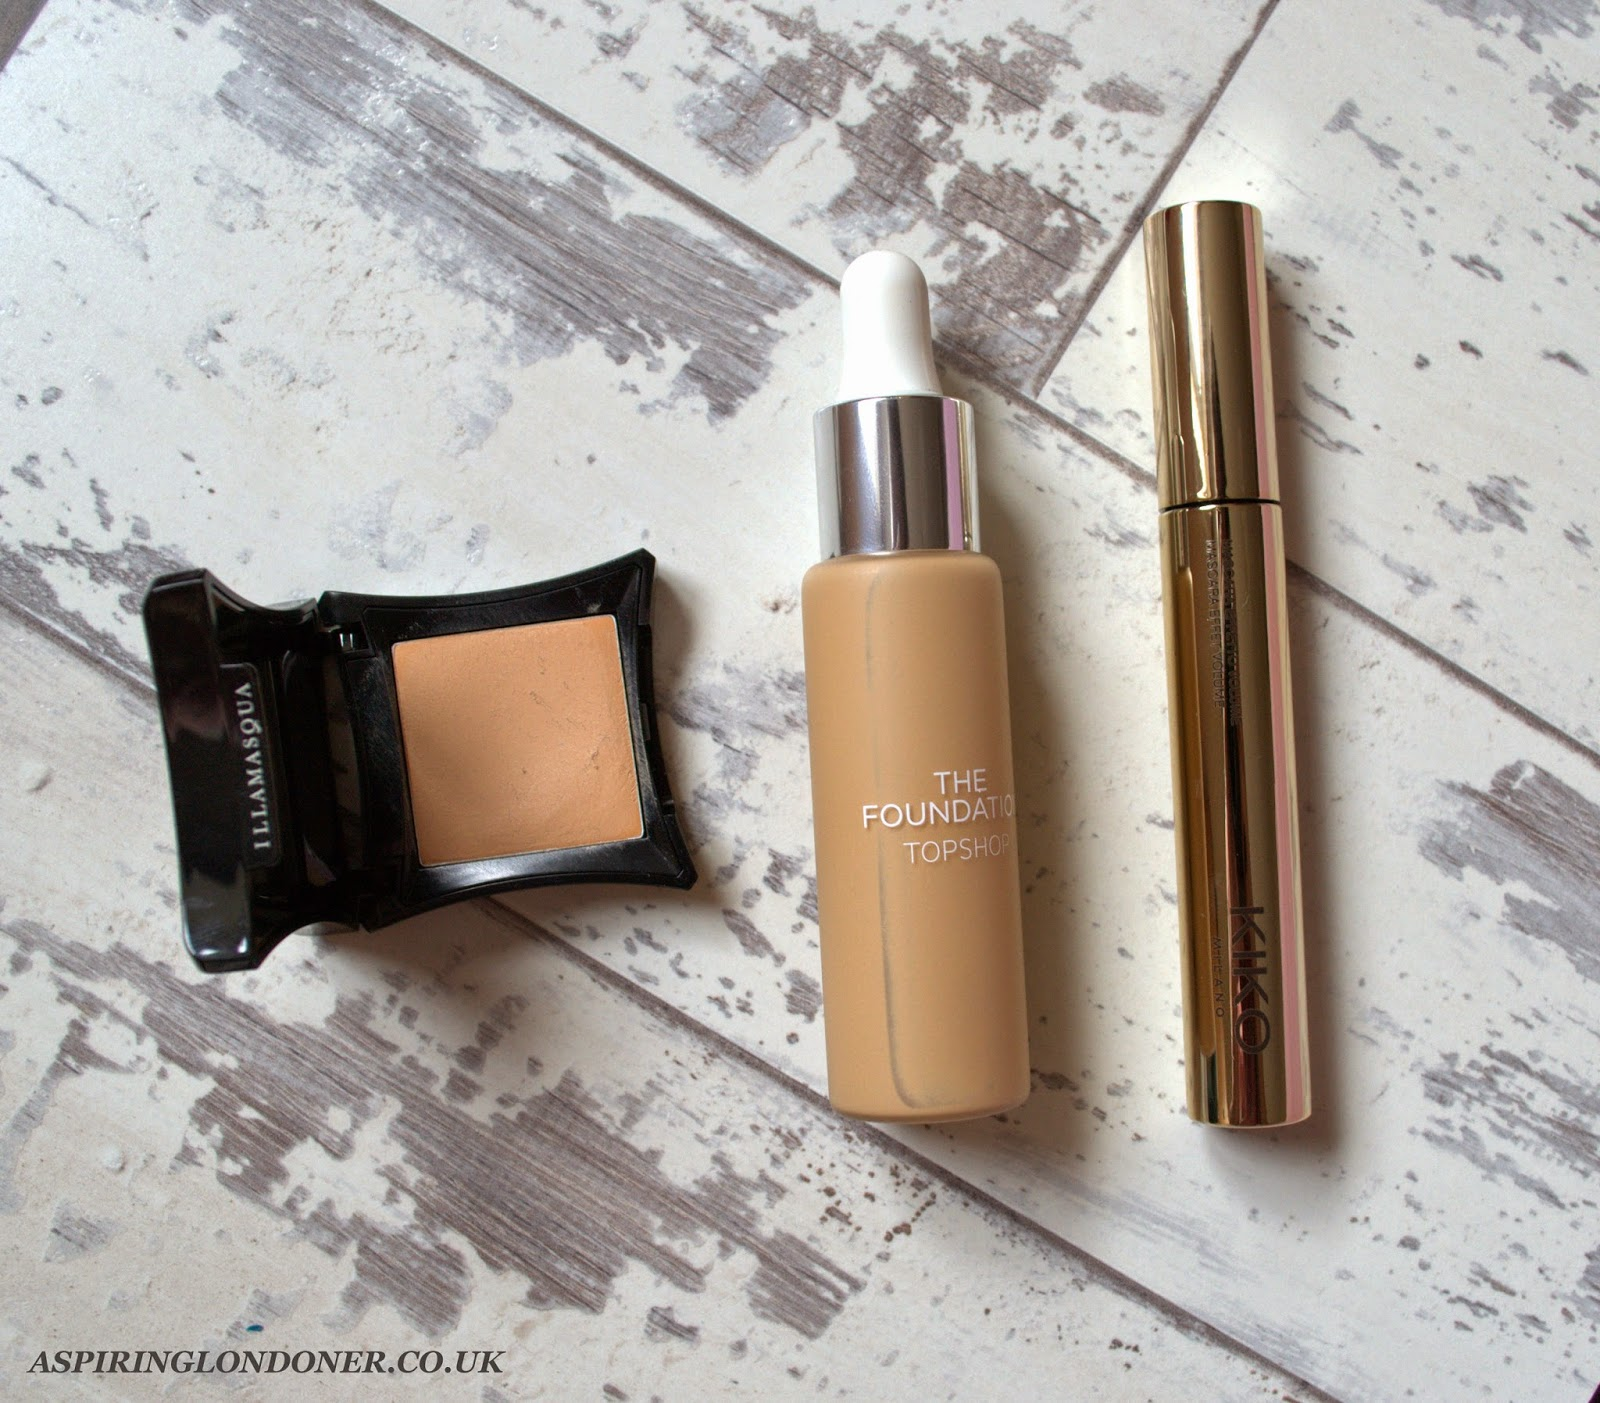 Disappointing Products Review ft Topshop, Illamasqua, Kiko - Aspiring Londoner